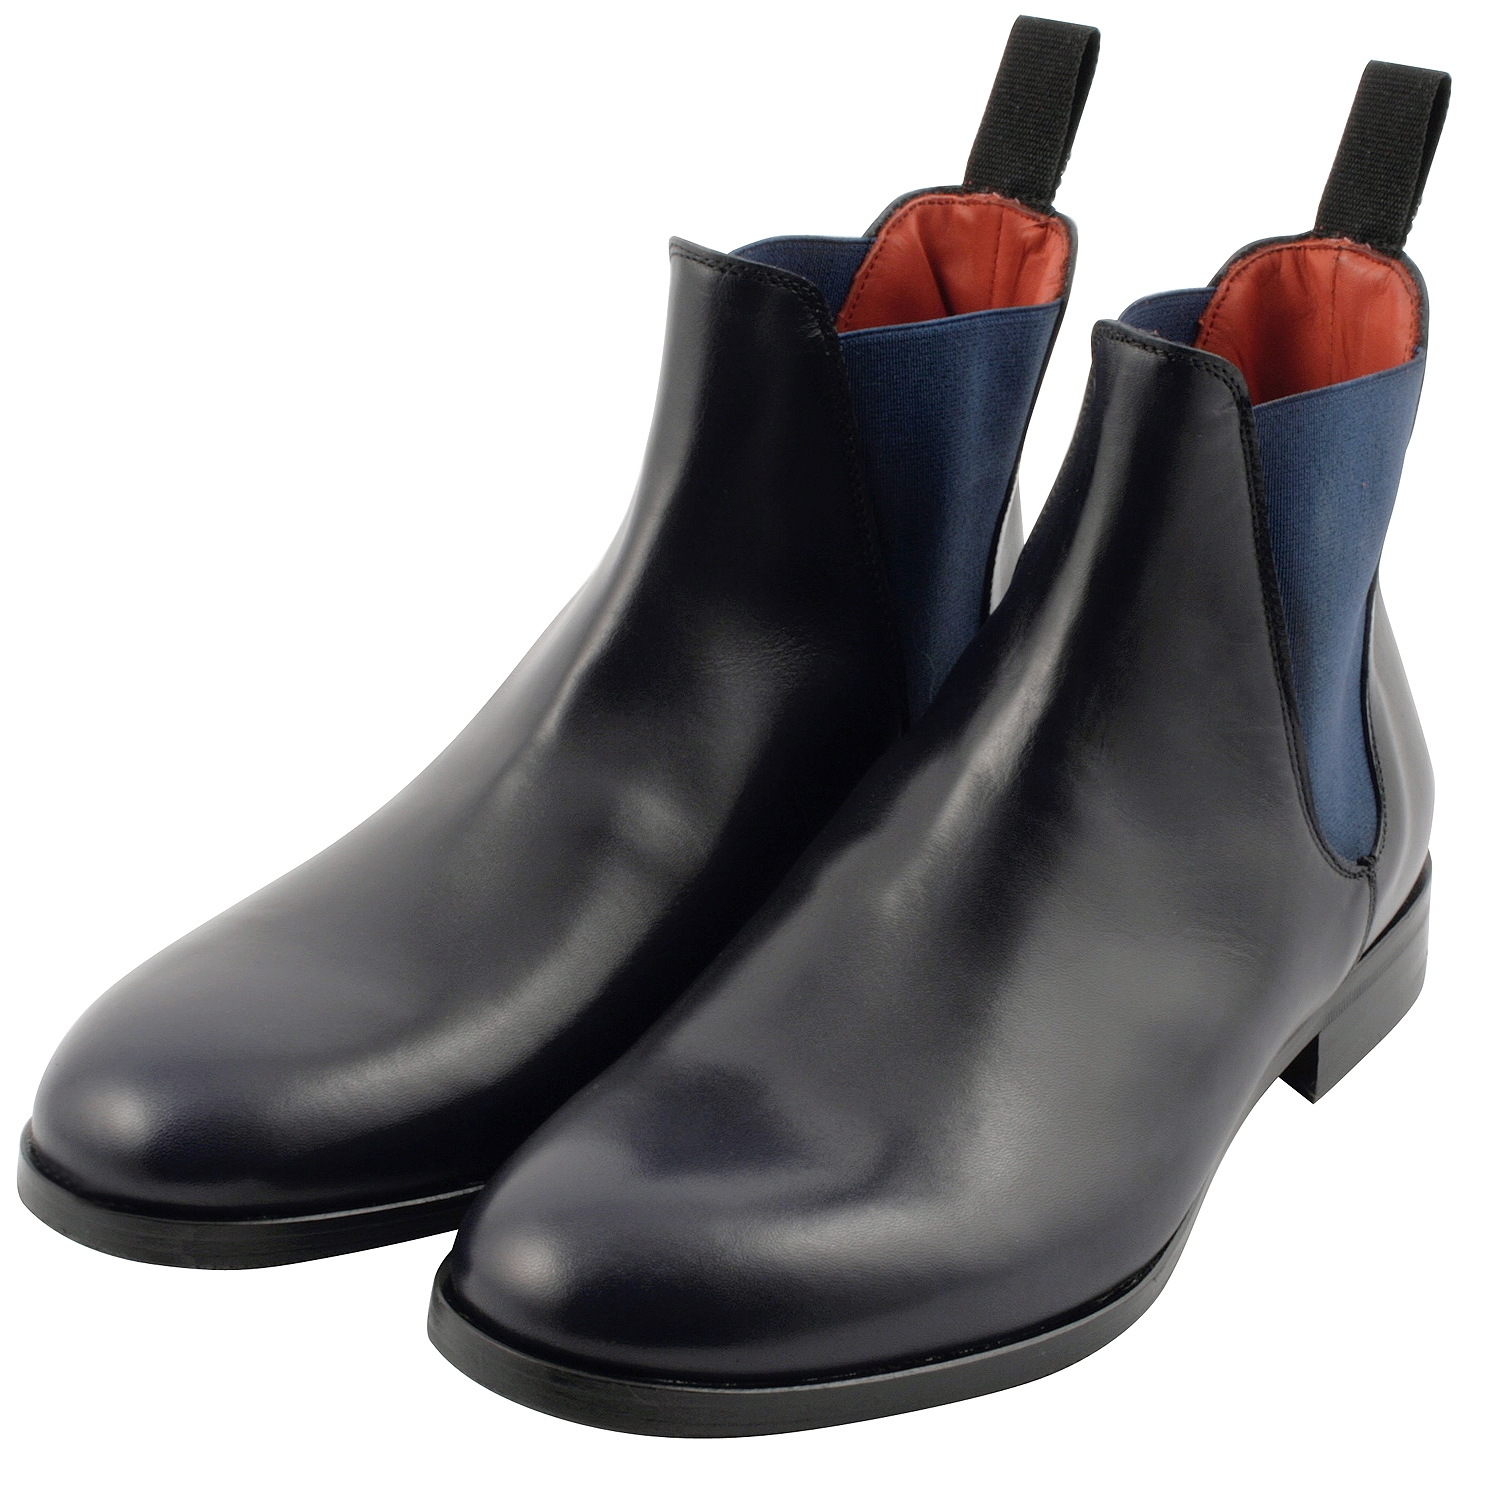 Exclusif Paris Mystere - Bottines en cuir - bleu marine